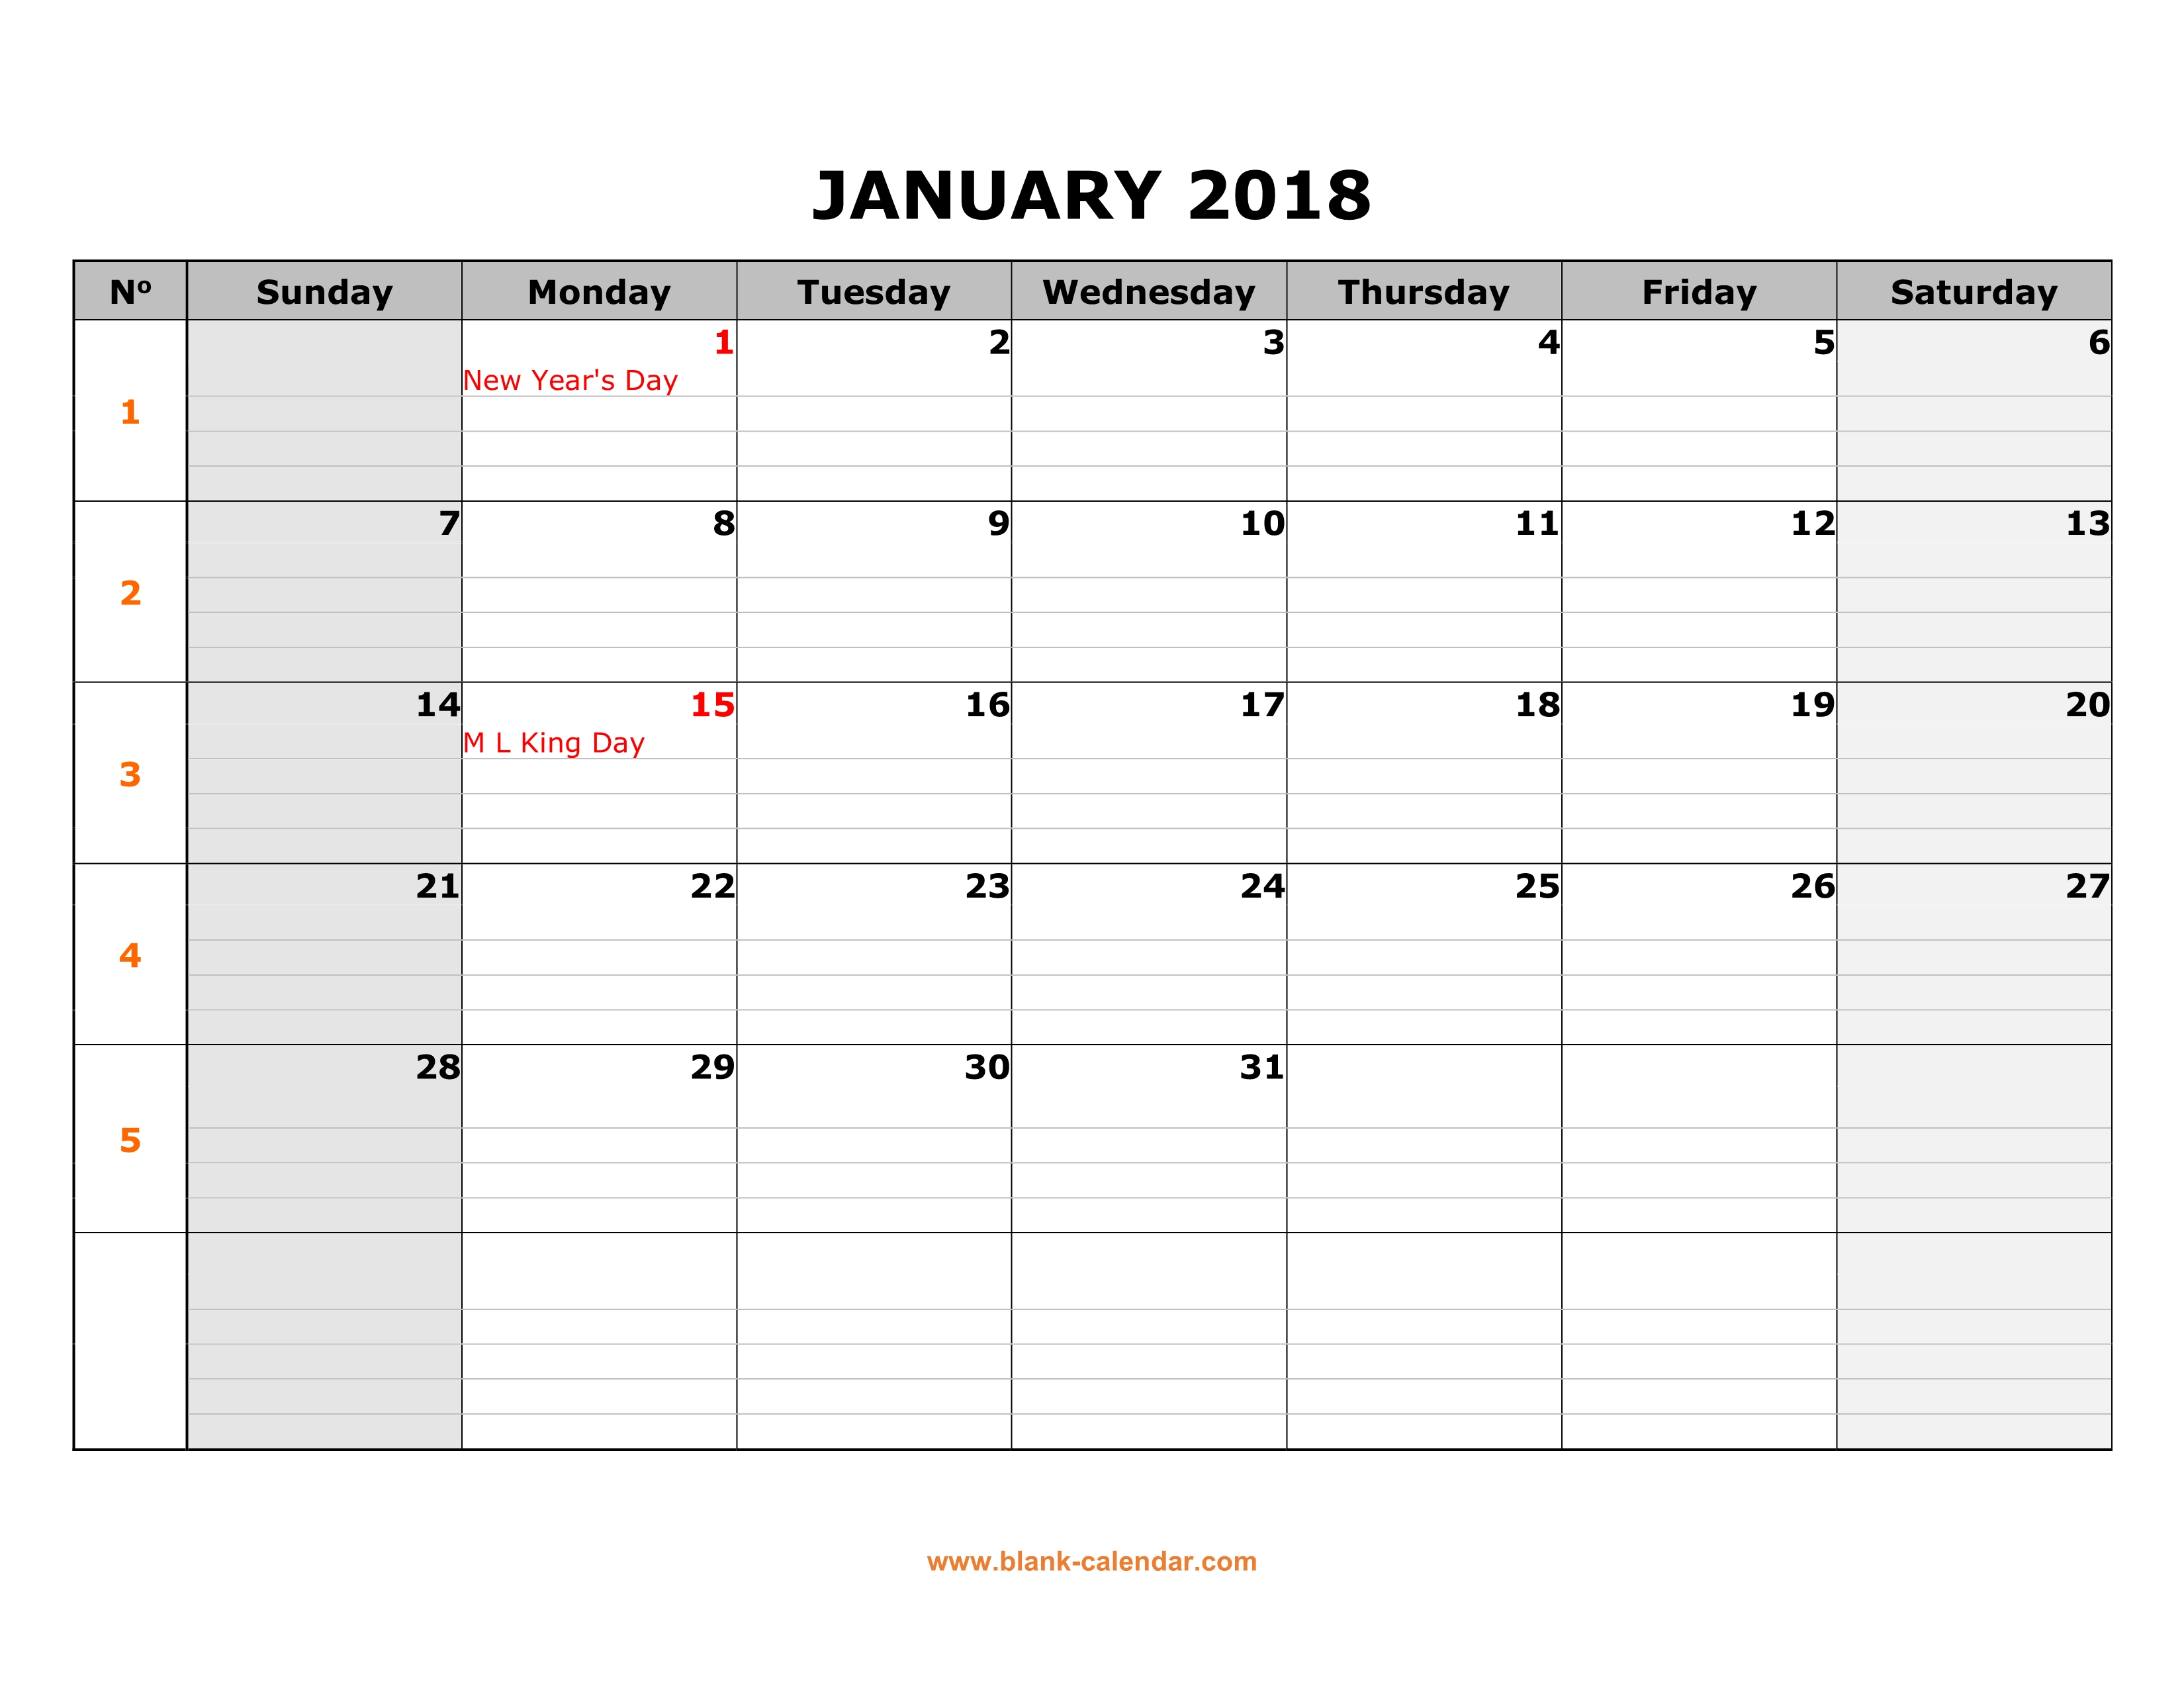 free download printable january 2018 calendar large box grid space for notes